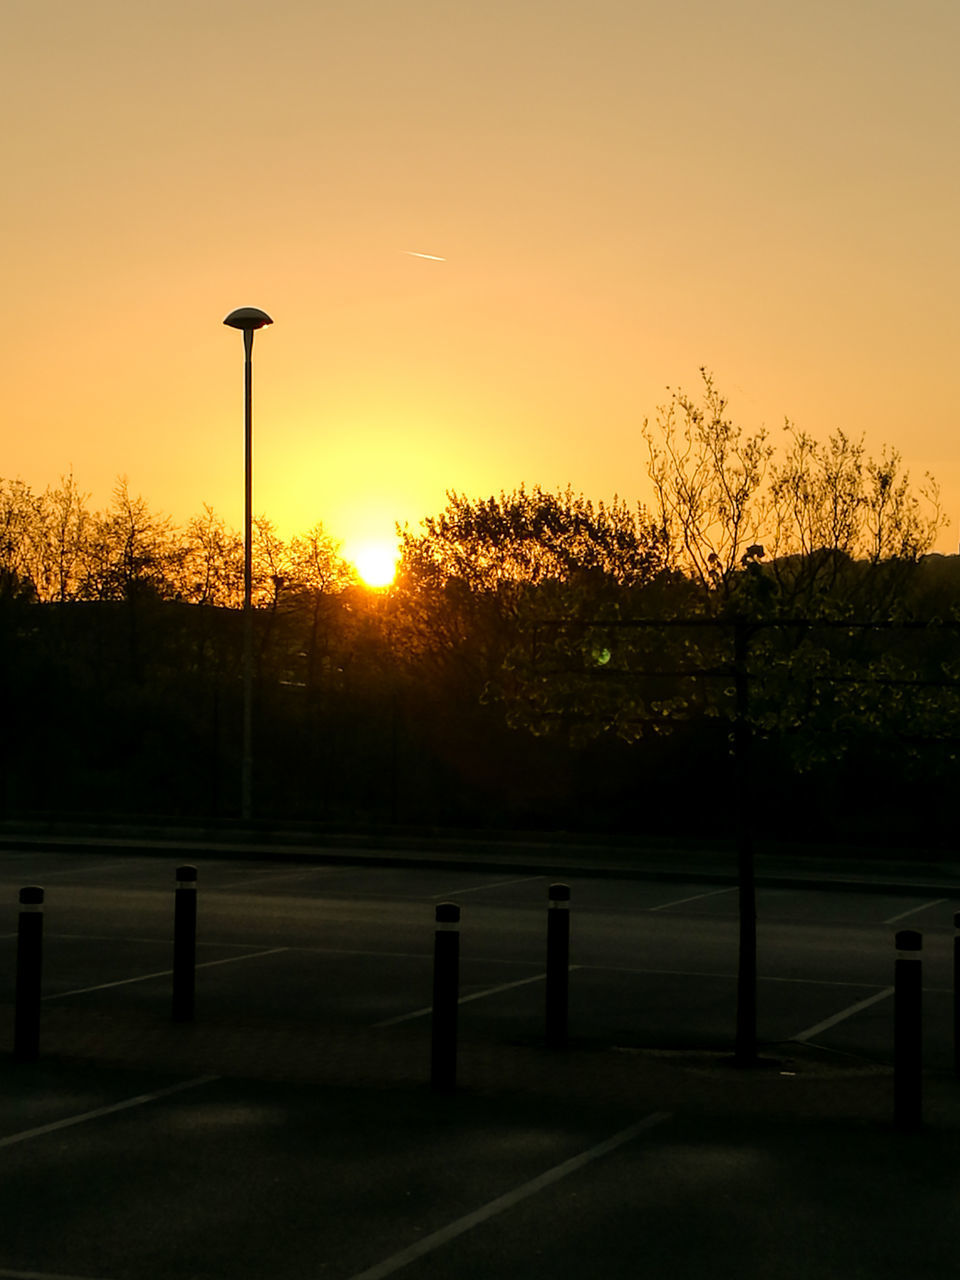 sunset, street light, tree, silhouette, no people, sun, outdoors, tranquility, tranquil scene, sky, nature, scenics, beauty in nature, illuminated